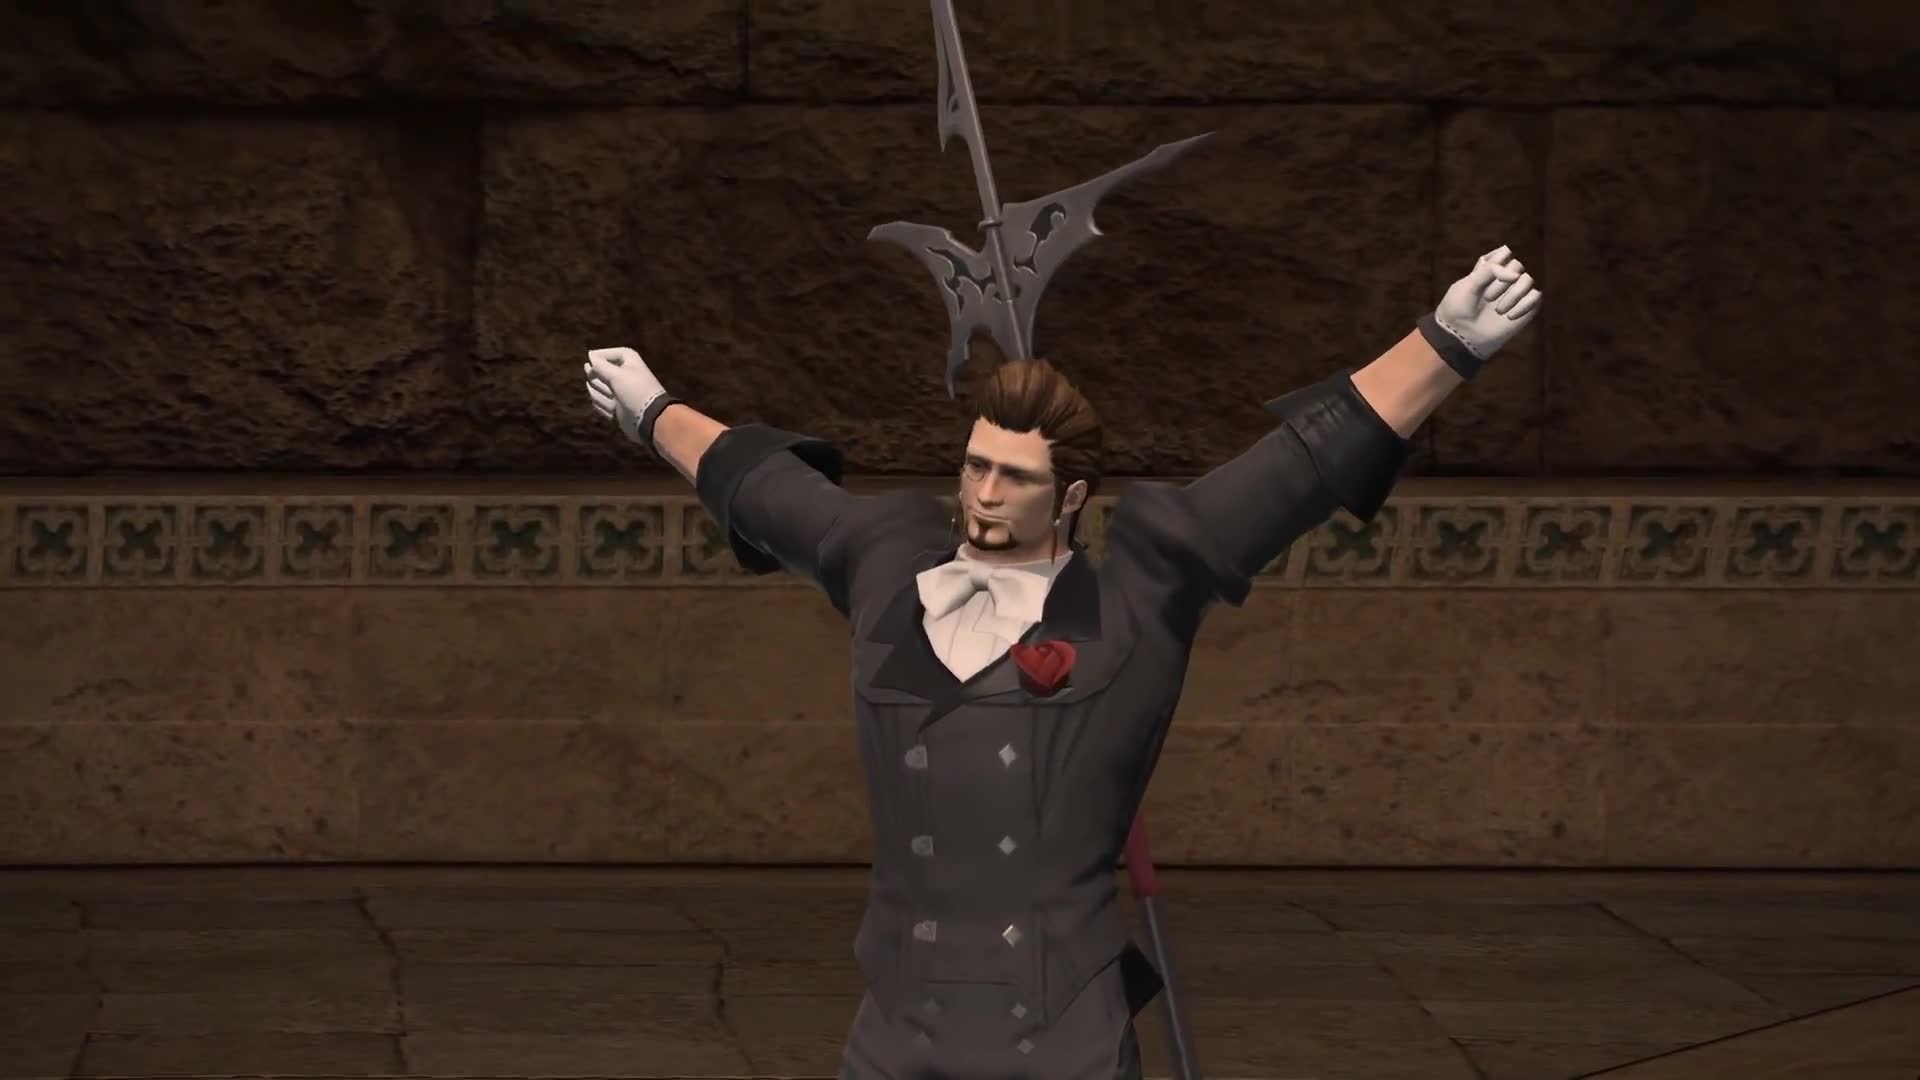 Clysmcast, FF14, FFXIV, Final Fantasy 14, Final Fantasy XIV, Meoni, guide, hands on, hildebrand, how to, manderville, must see, new Hildibrand, new trial, news, overview, preview, review, storyline, thoughts, FFXIV: New Hildibrand Trial In 4.5 GIFs